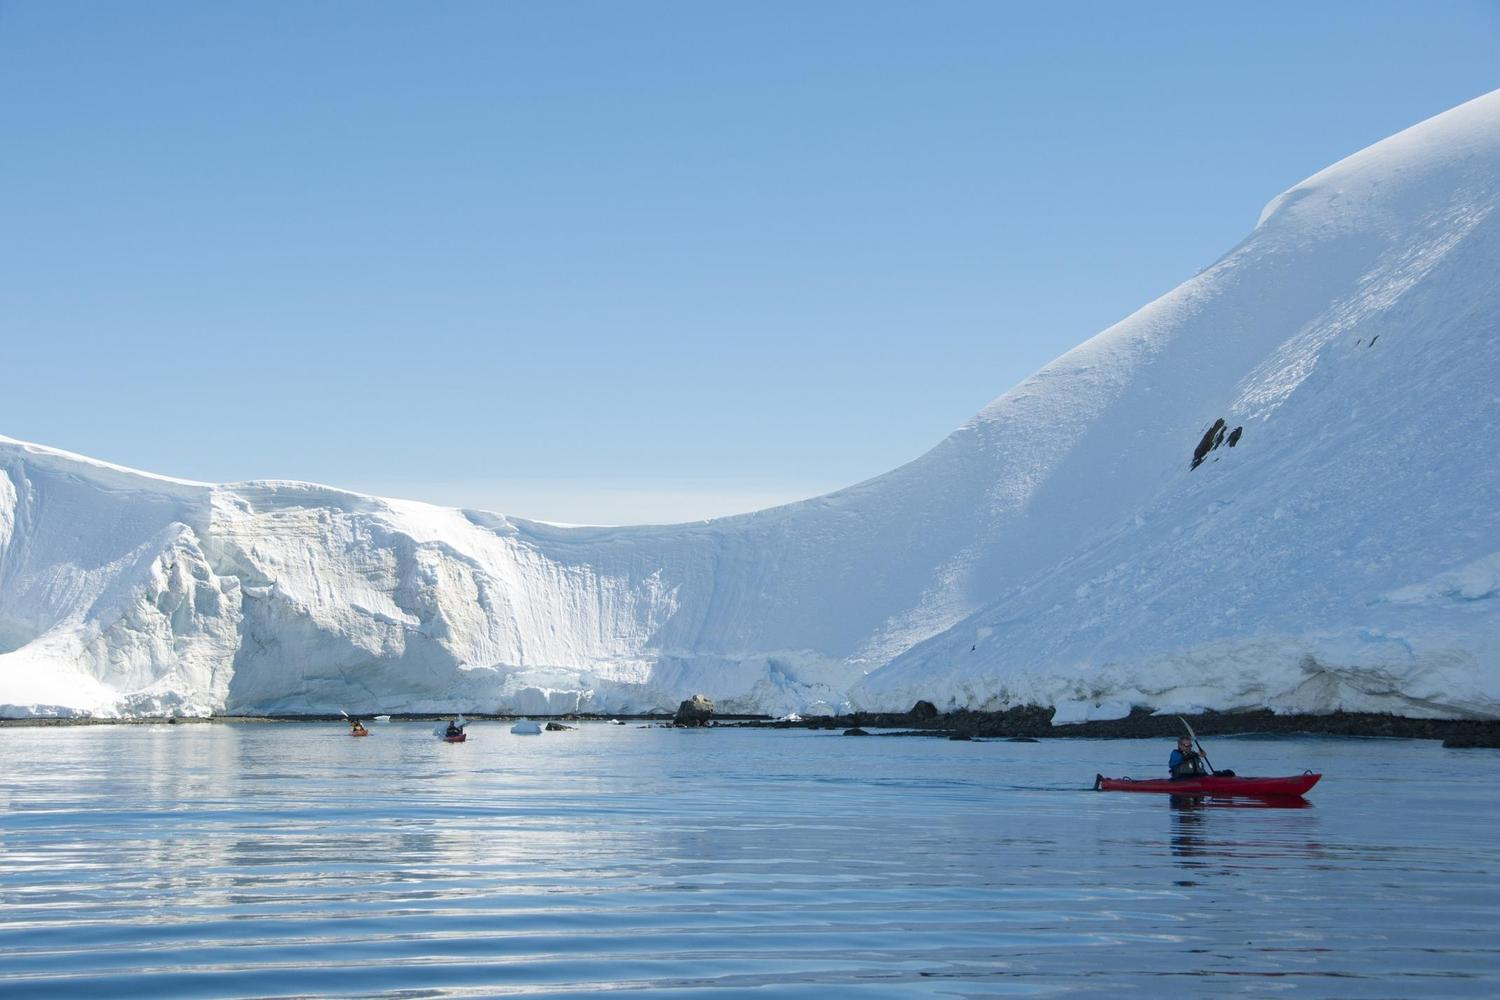 Kayaking calm waters off the Antarctic Peninsula